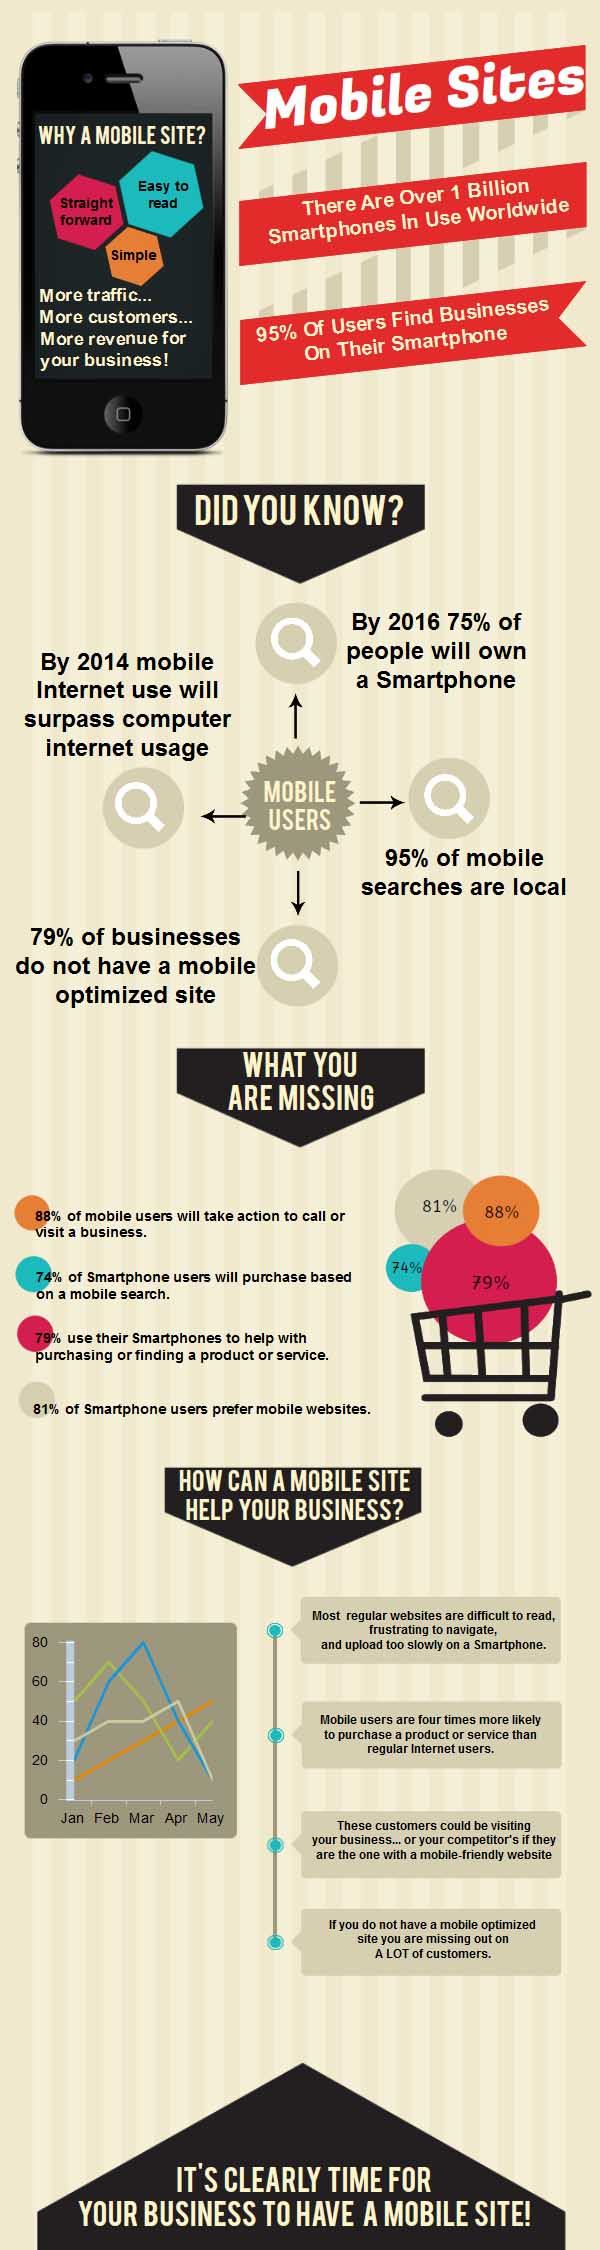 Why Build Mobile Websites Infographic